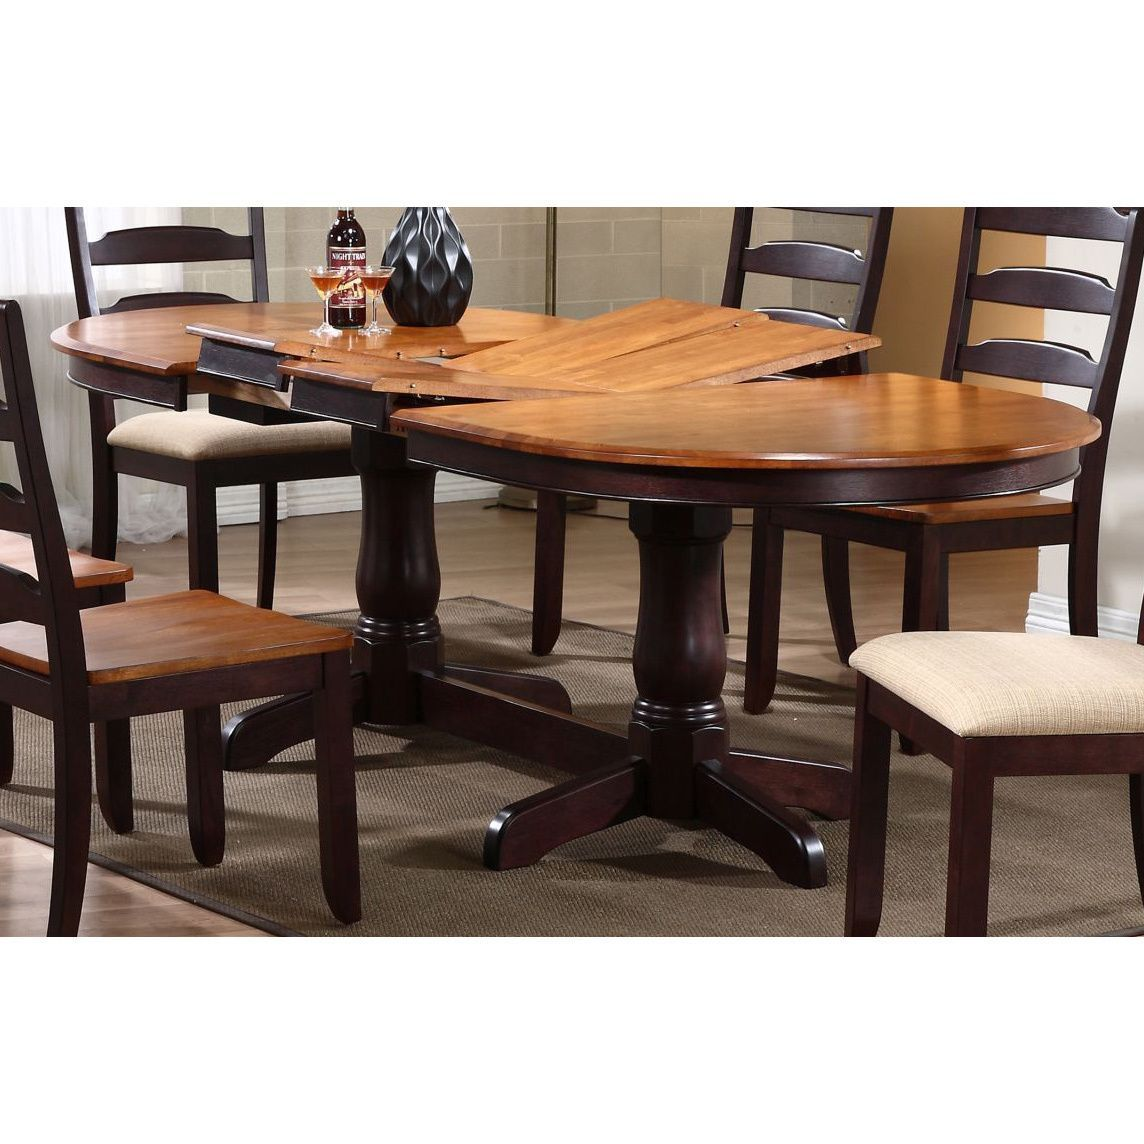 Overstock Com Online Shopping Bedding Furniture Electronics Jewelry Clothing More Oval Table Dining Oval Dining Room Table Dining Table